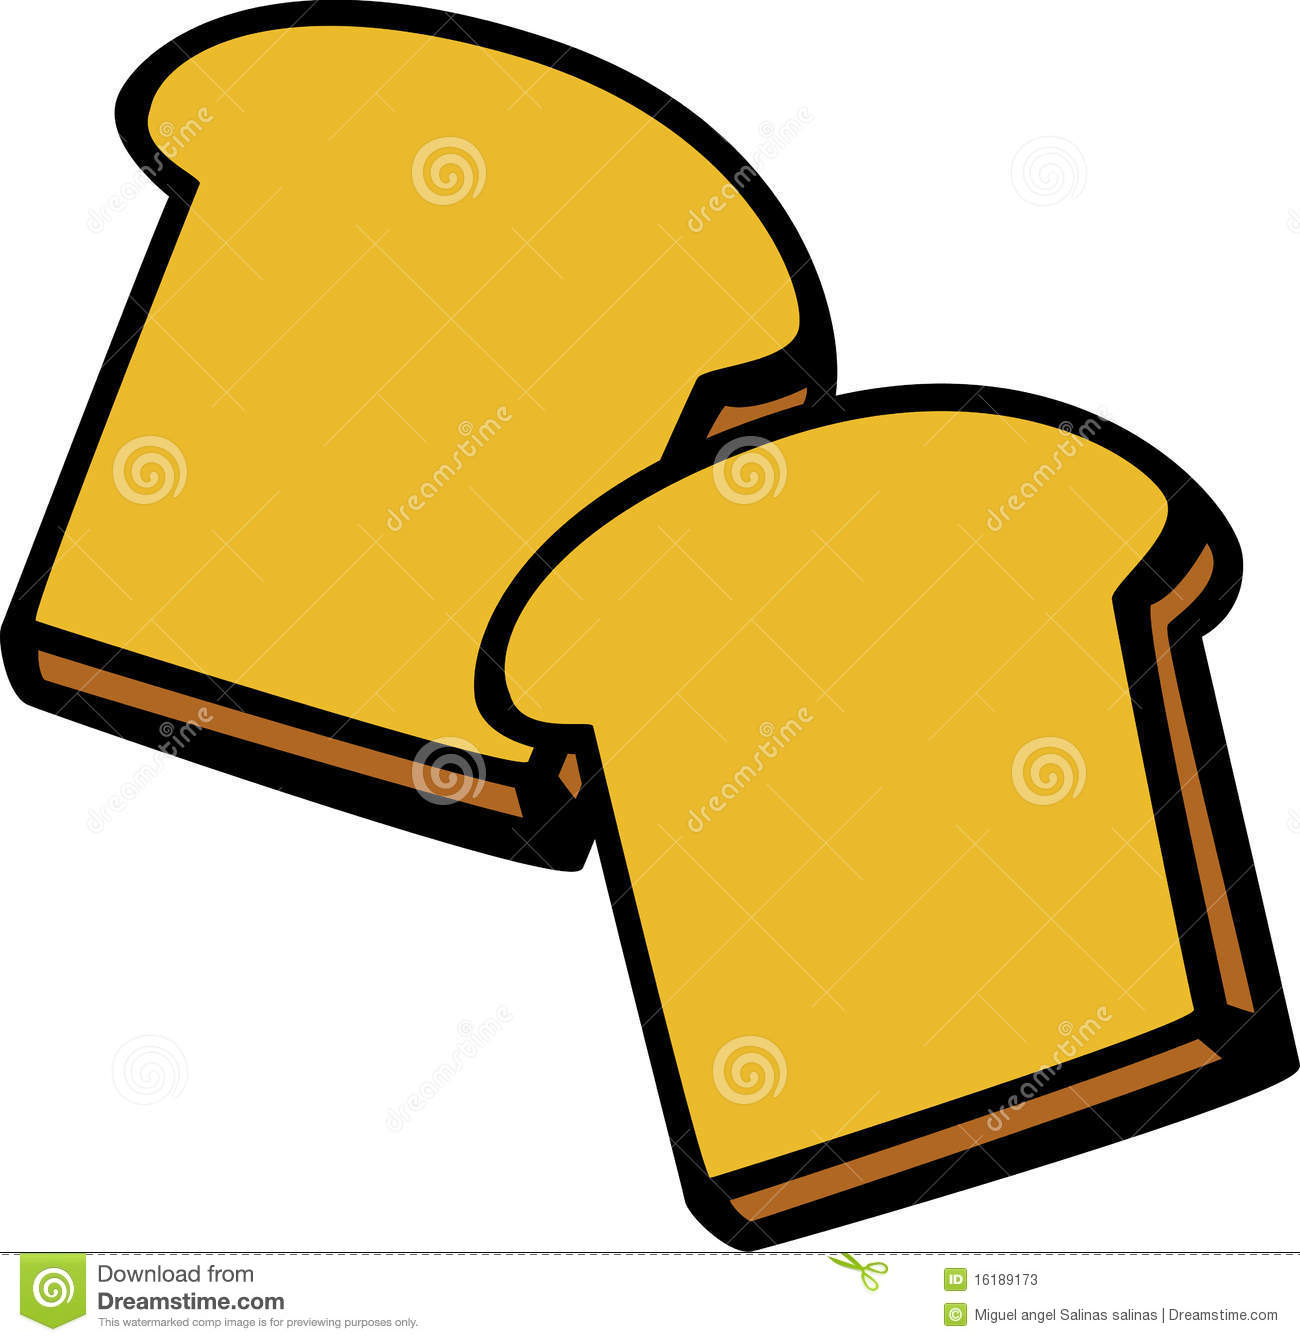 Slices of bread clipart.